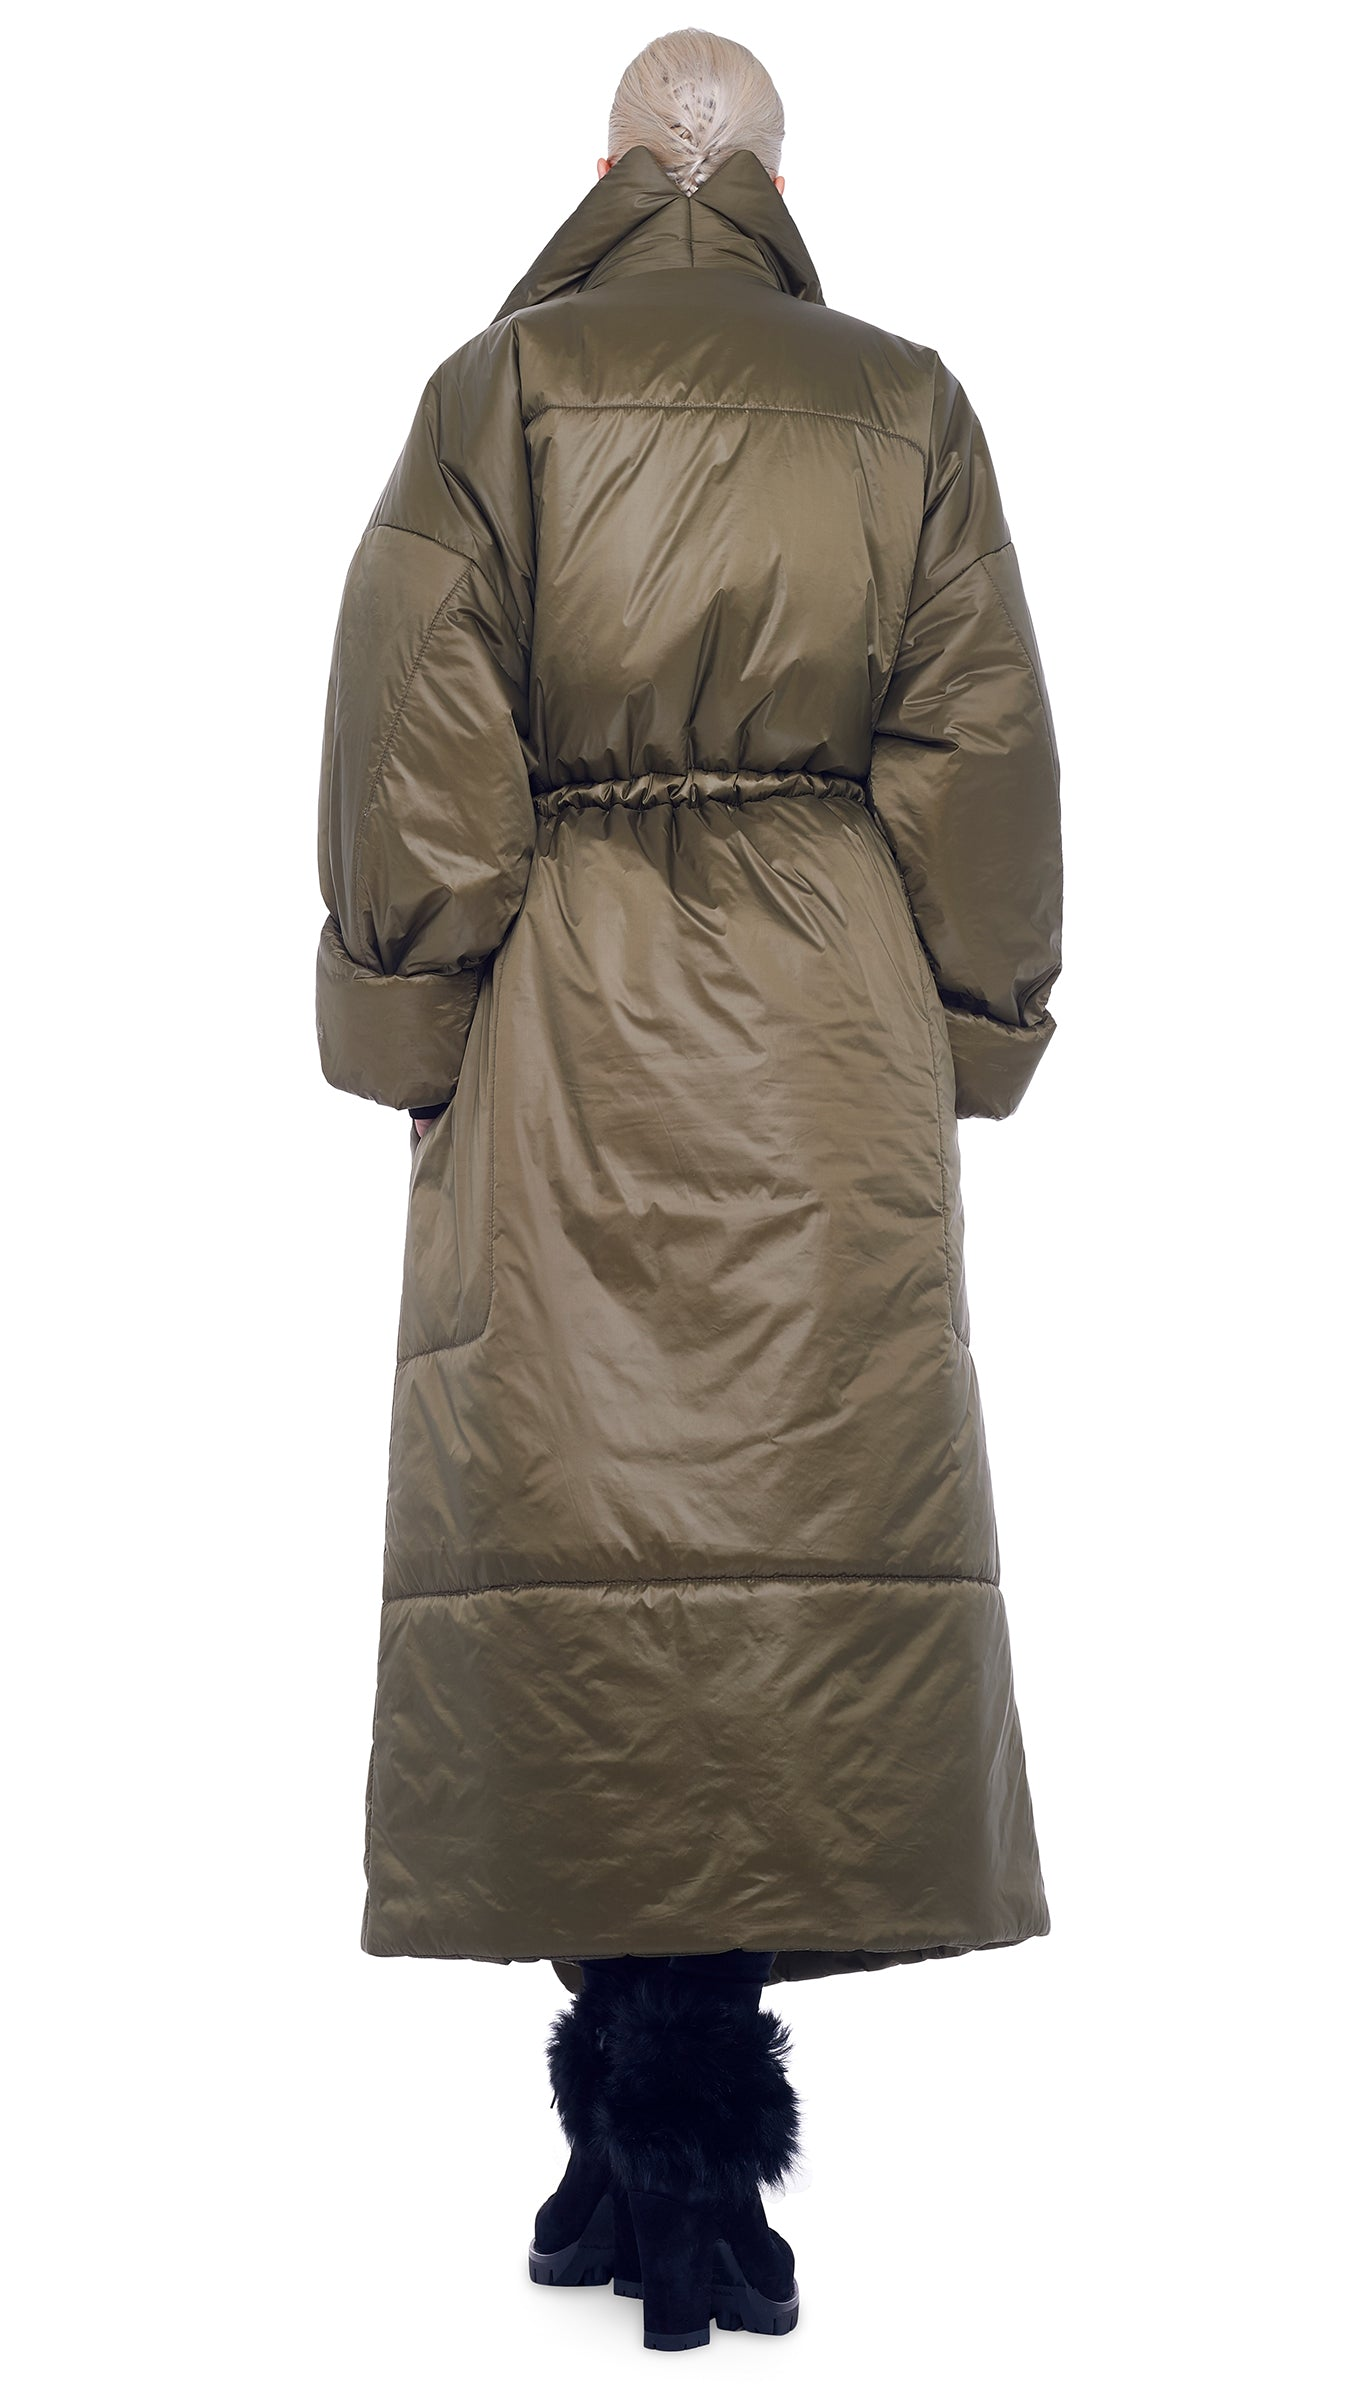 OVERSIZED BOYFRIEND SLEEPING BAG COAT